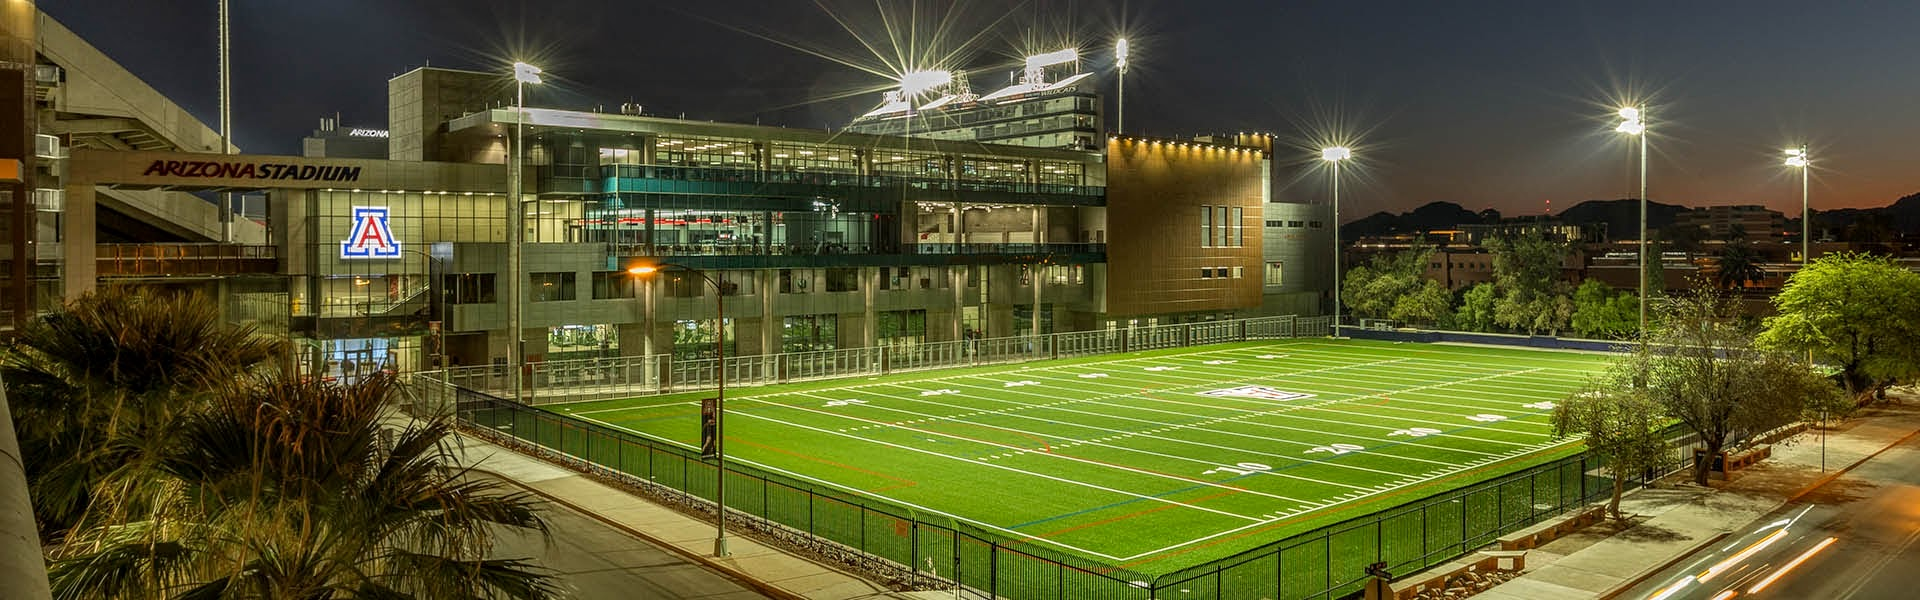 Lowell-Stevens Football Facility